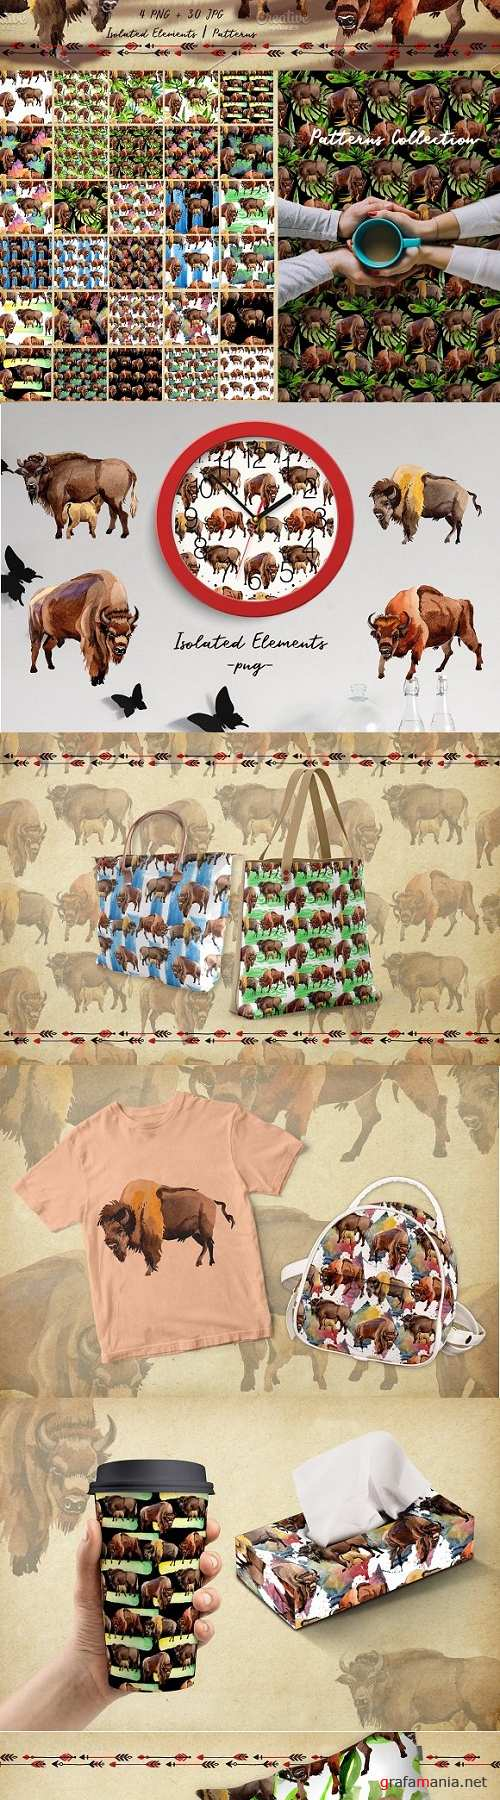 Exotic bison wild animal PNG watercolor set - 2920230 - 3486700